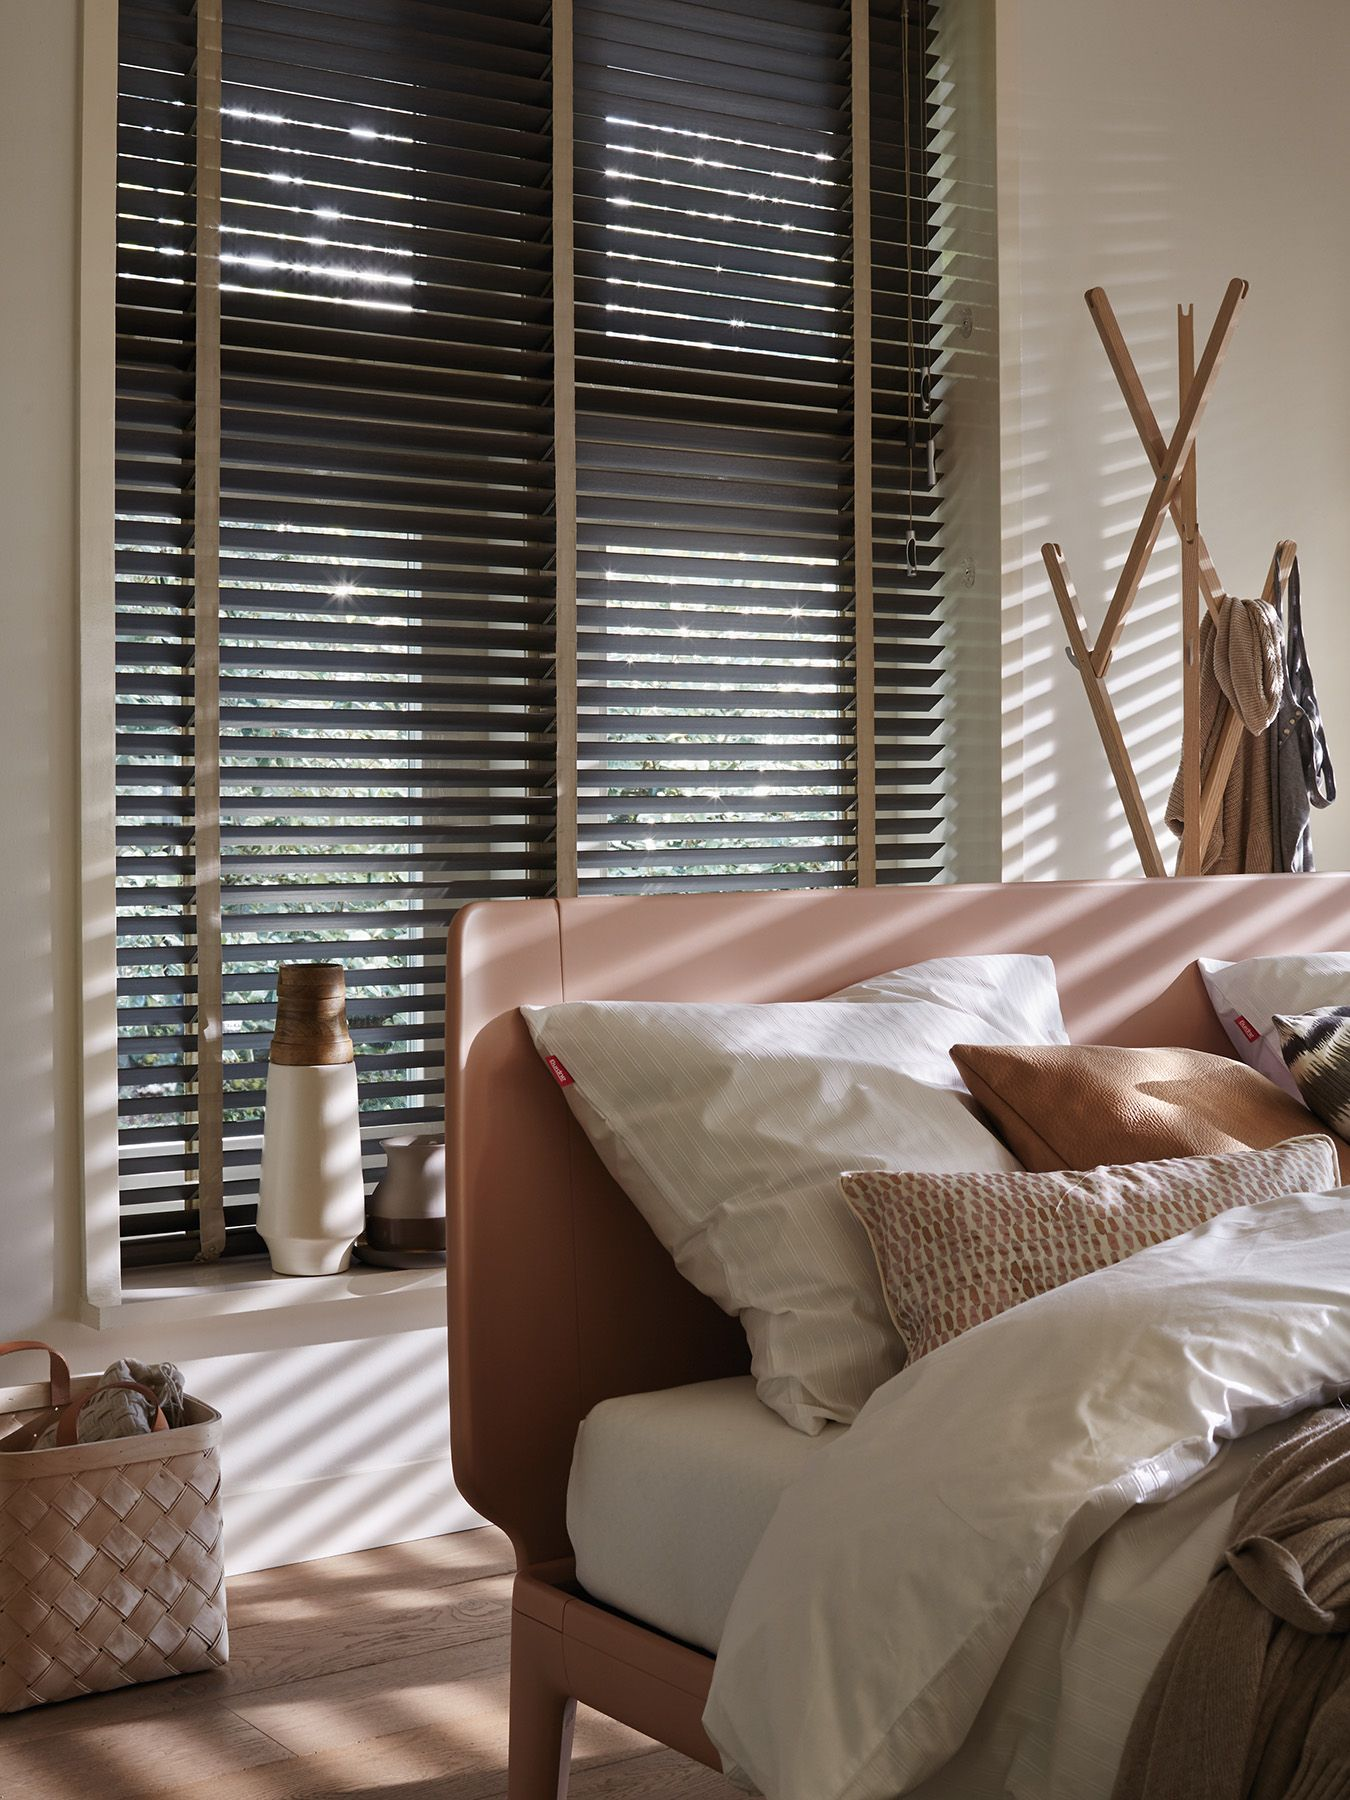 Using A Textured Woven Tape On A Glossy Black Blind Lends It Some - Bedroom blinds